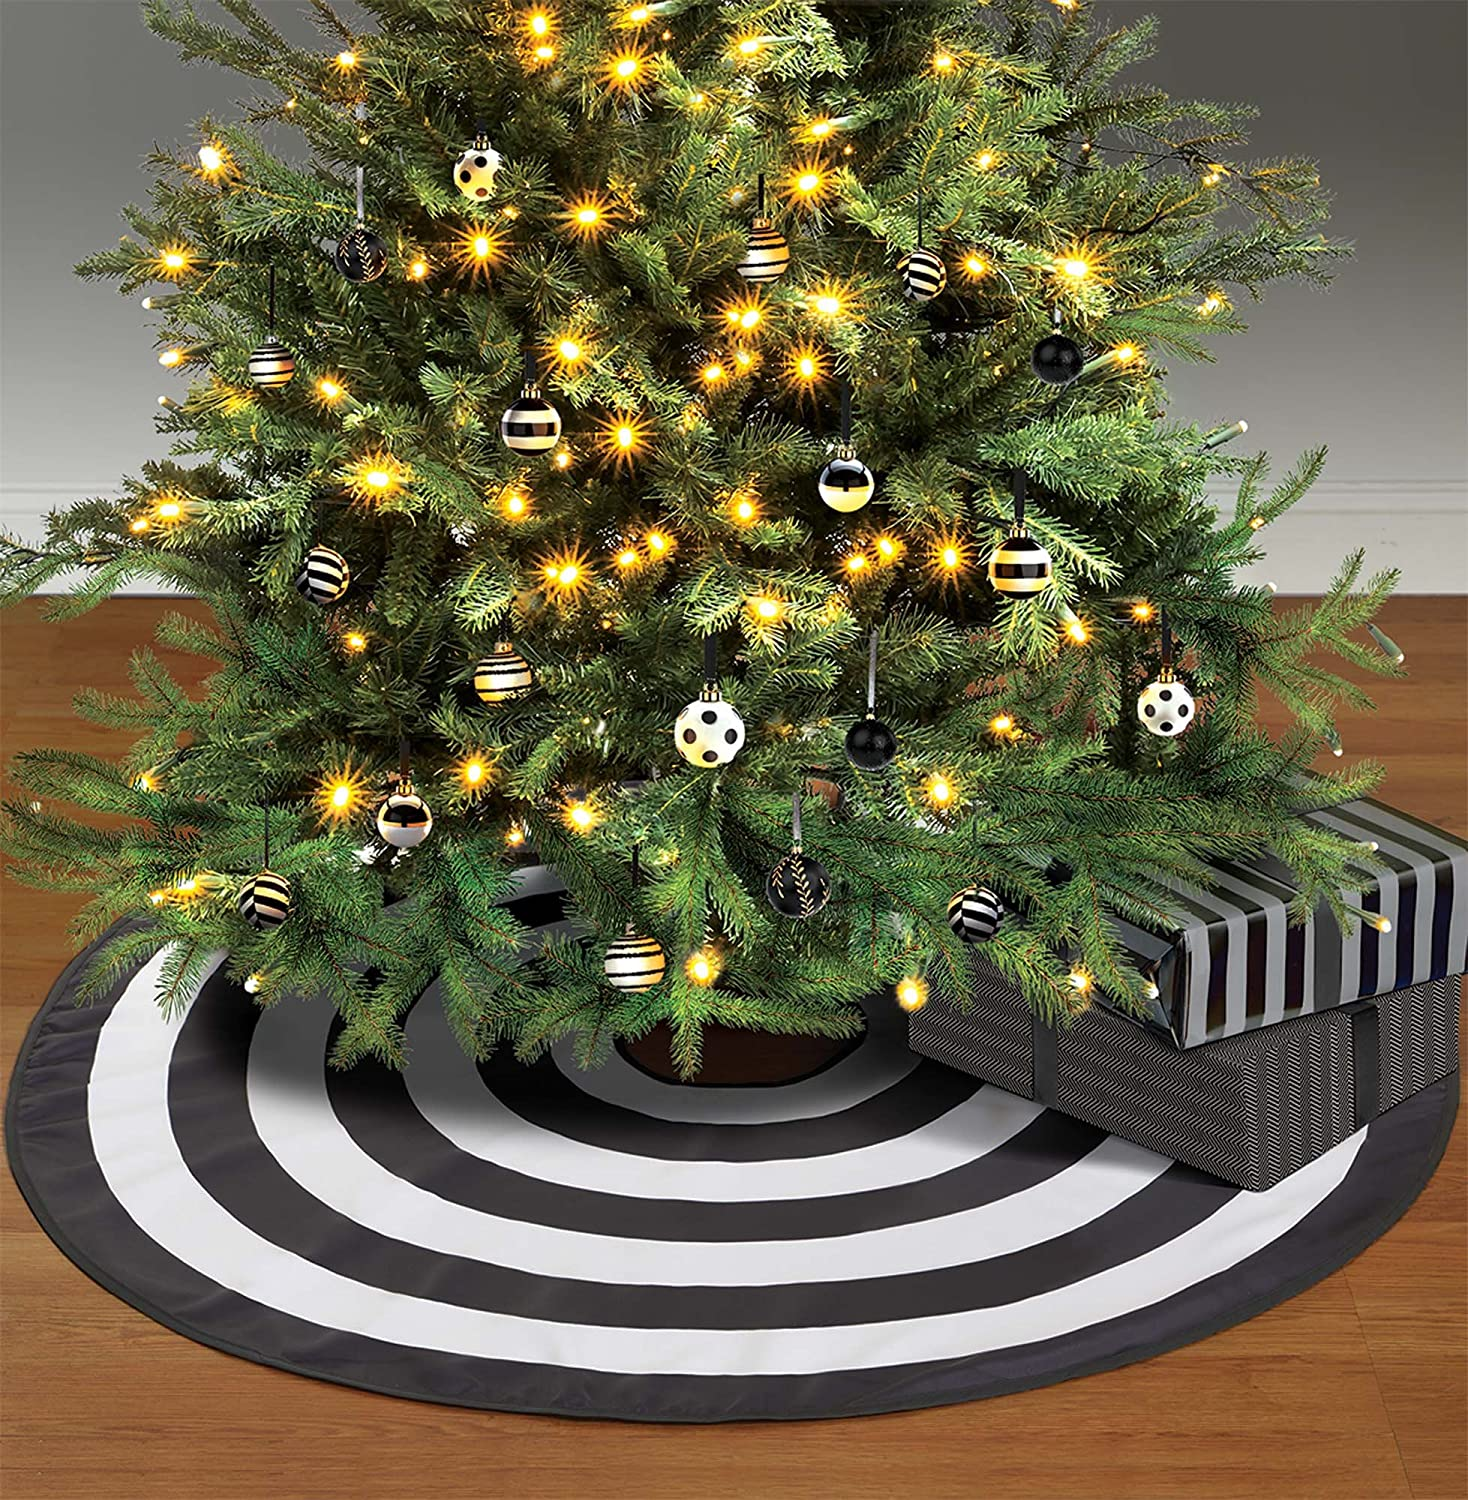 Tree Skirt Blck and WHT Amscan